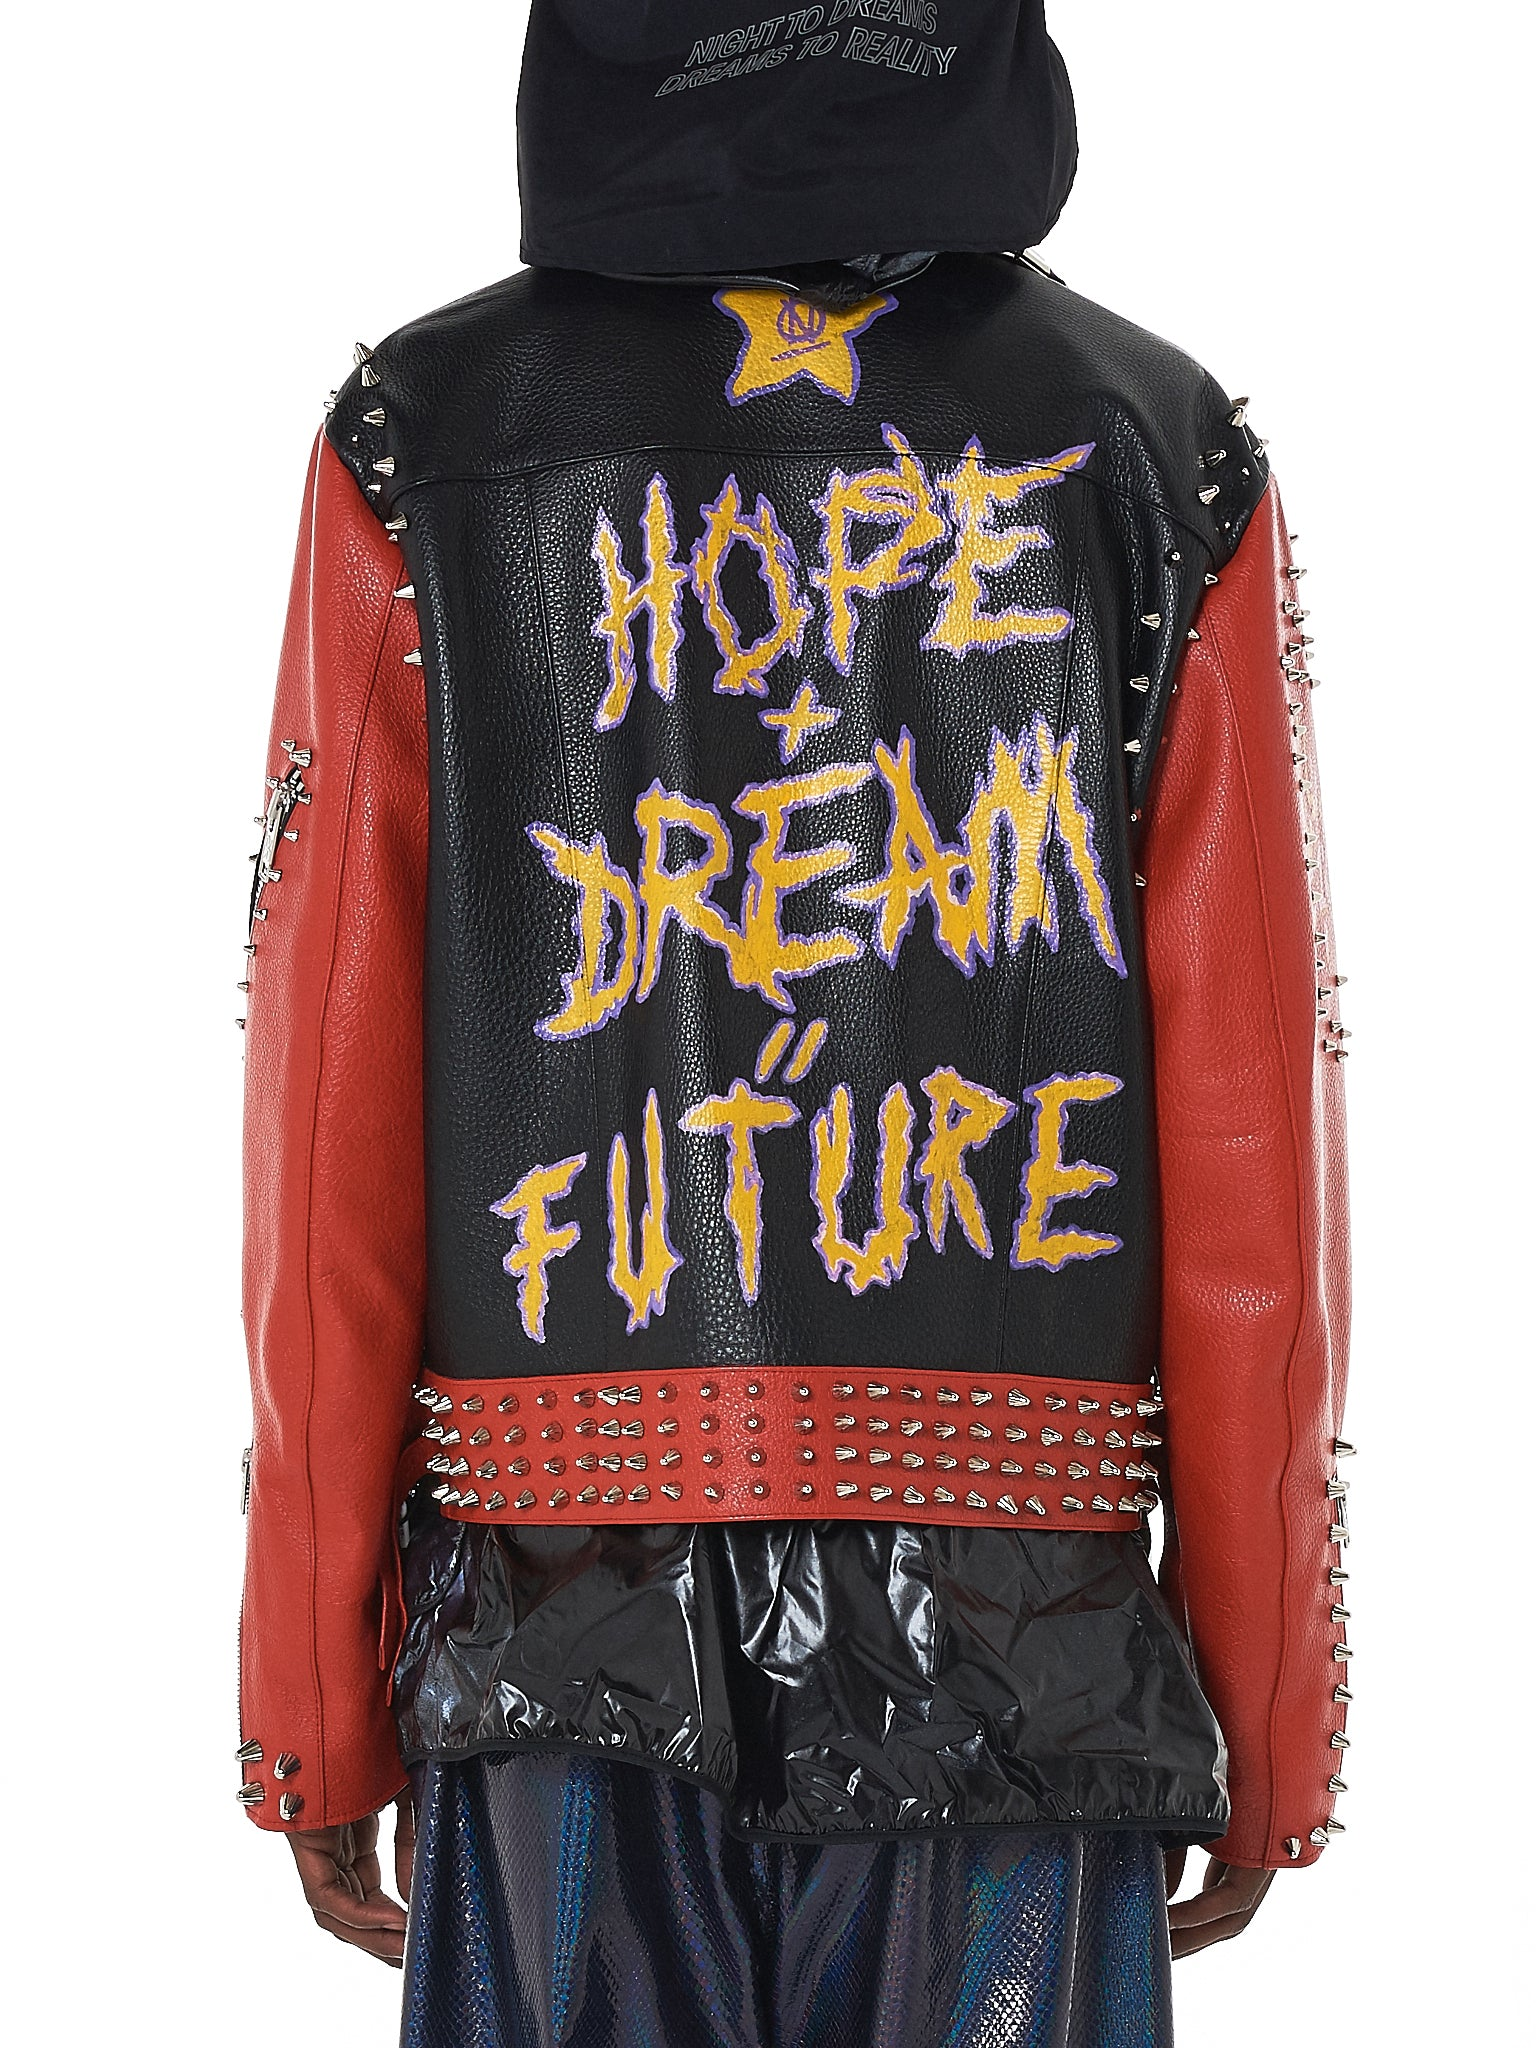 99%IS Studded Dualtone Biker Jacket - Hlorenzo Back